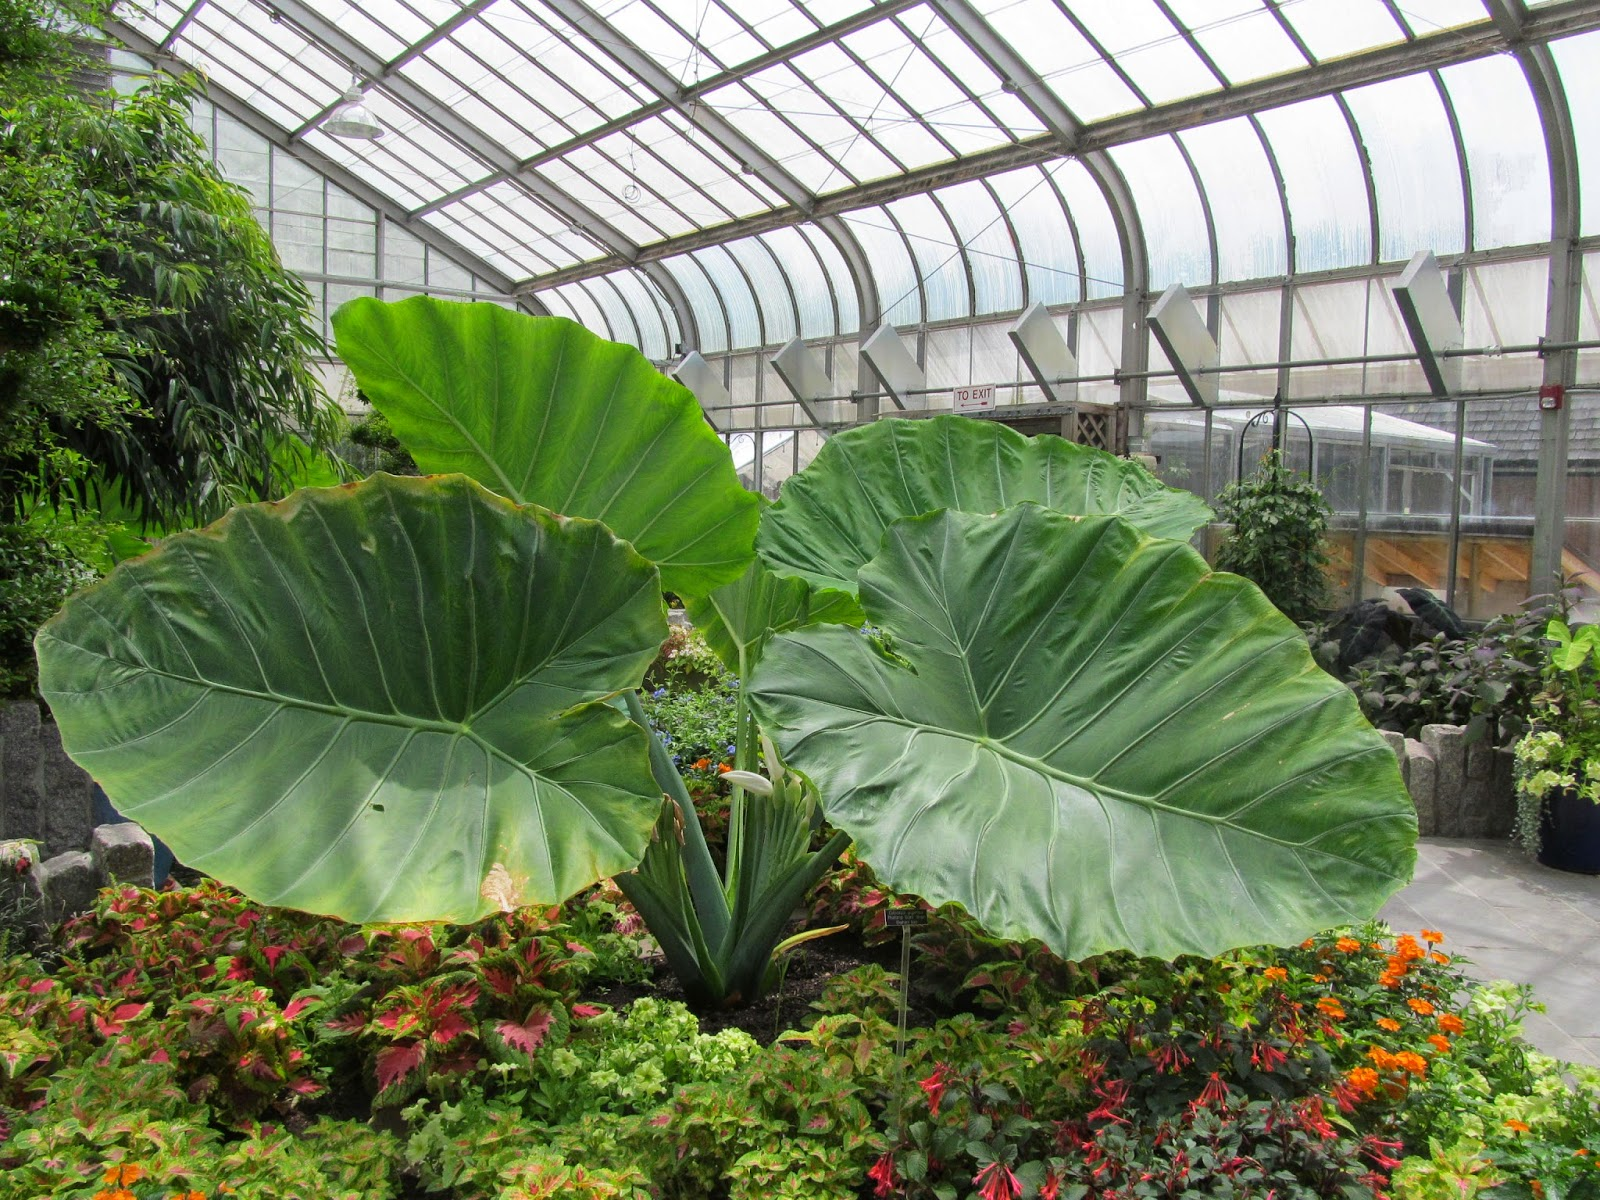 The leaves of the elephant ear plant are giant! (c) Stormy Heart